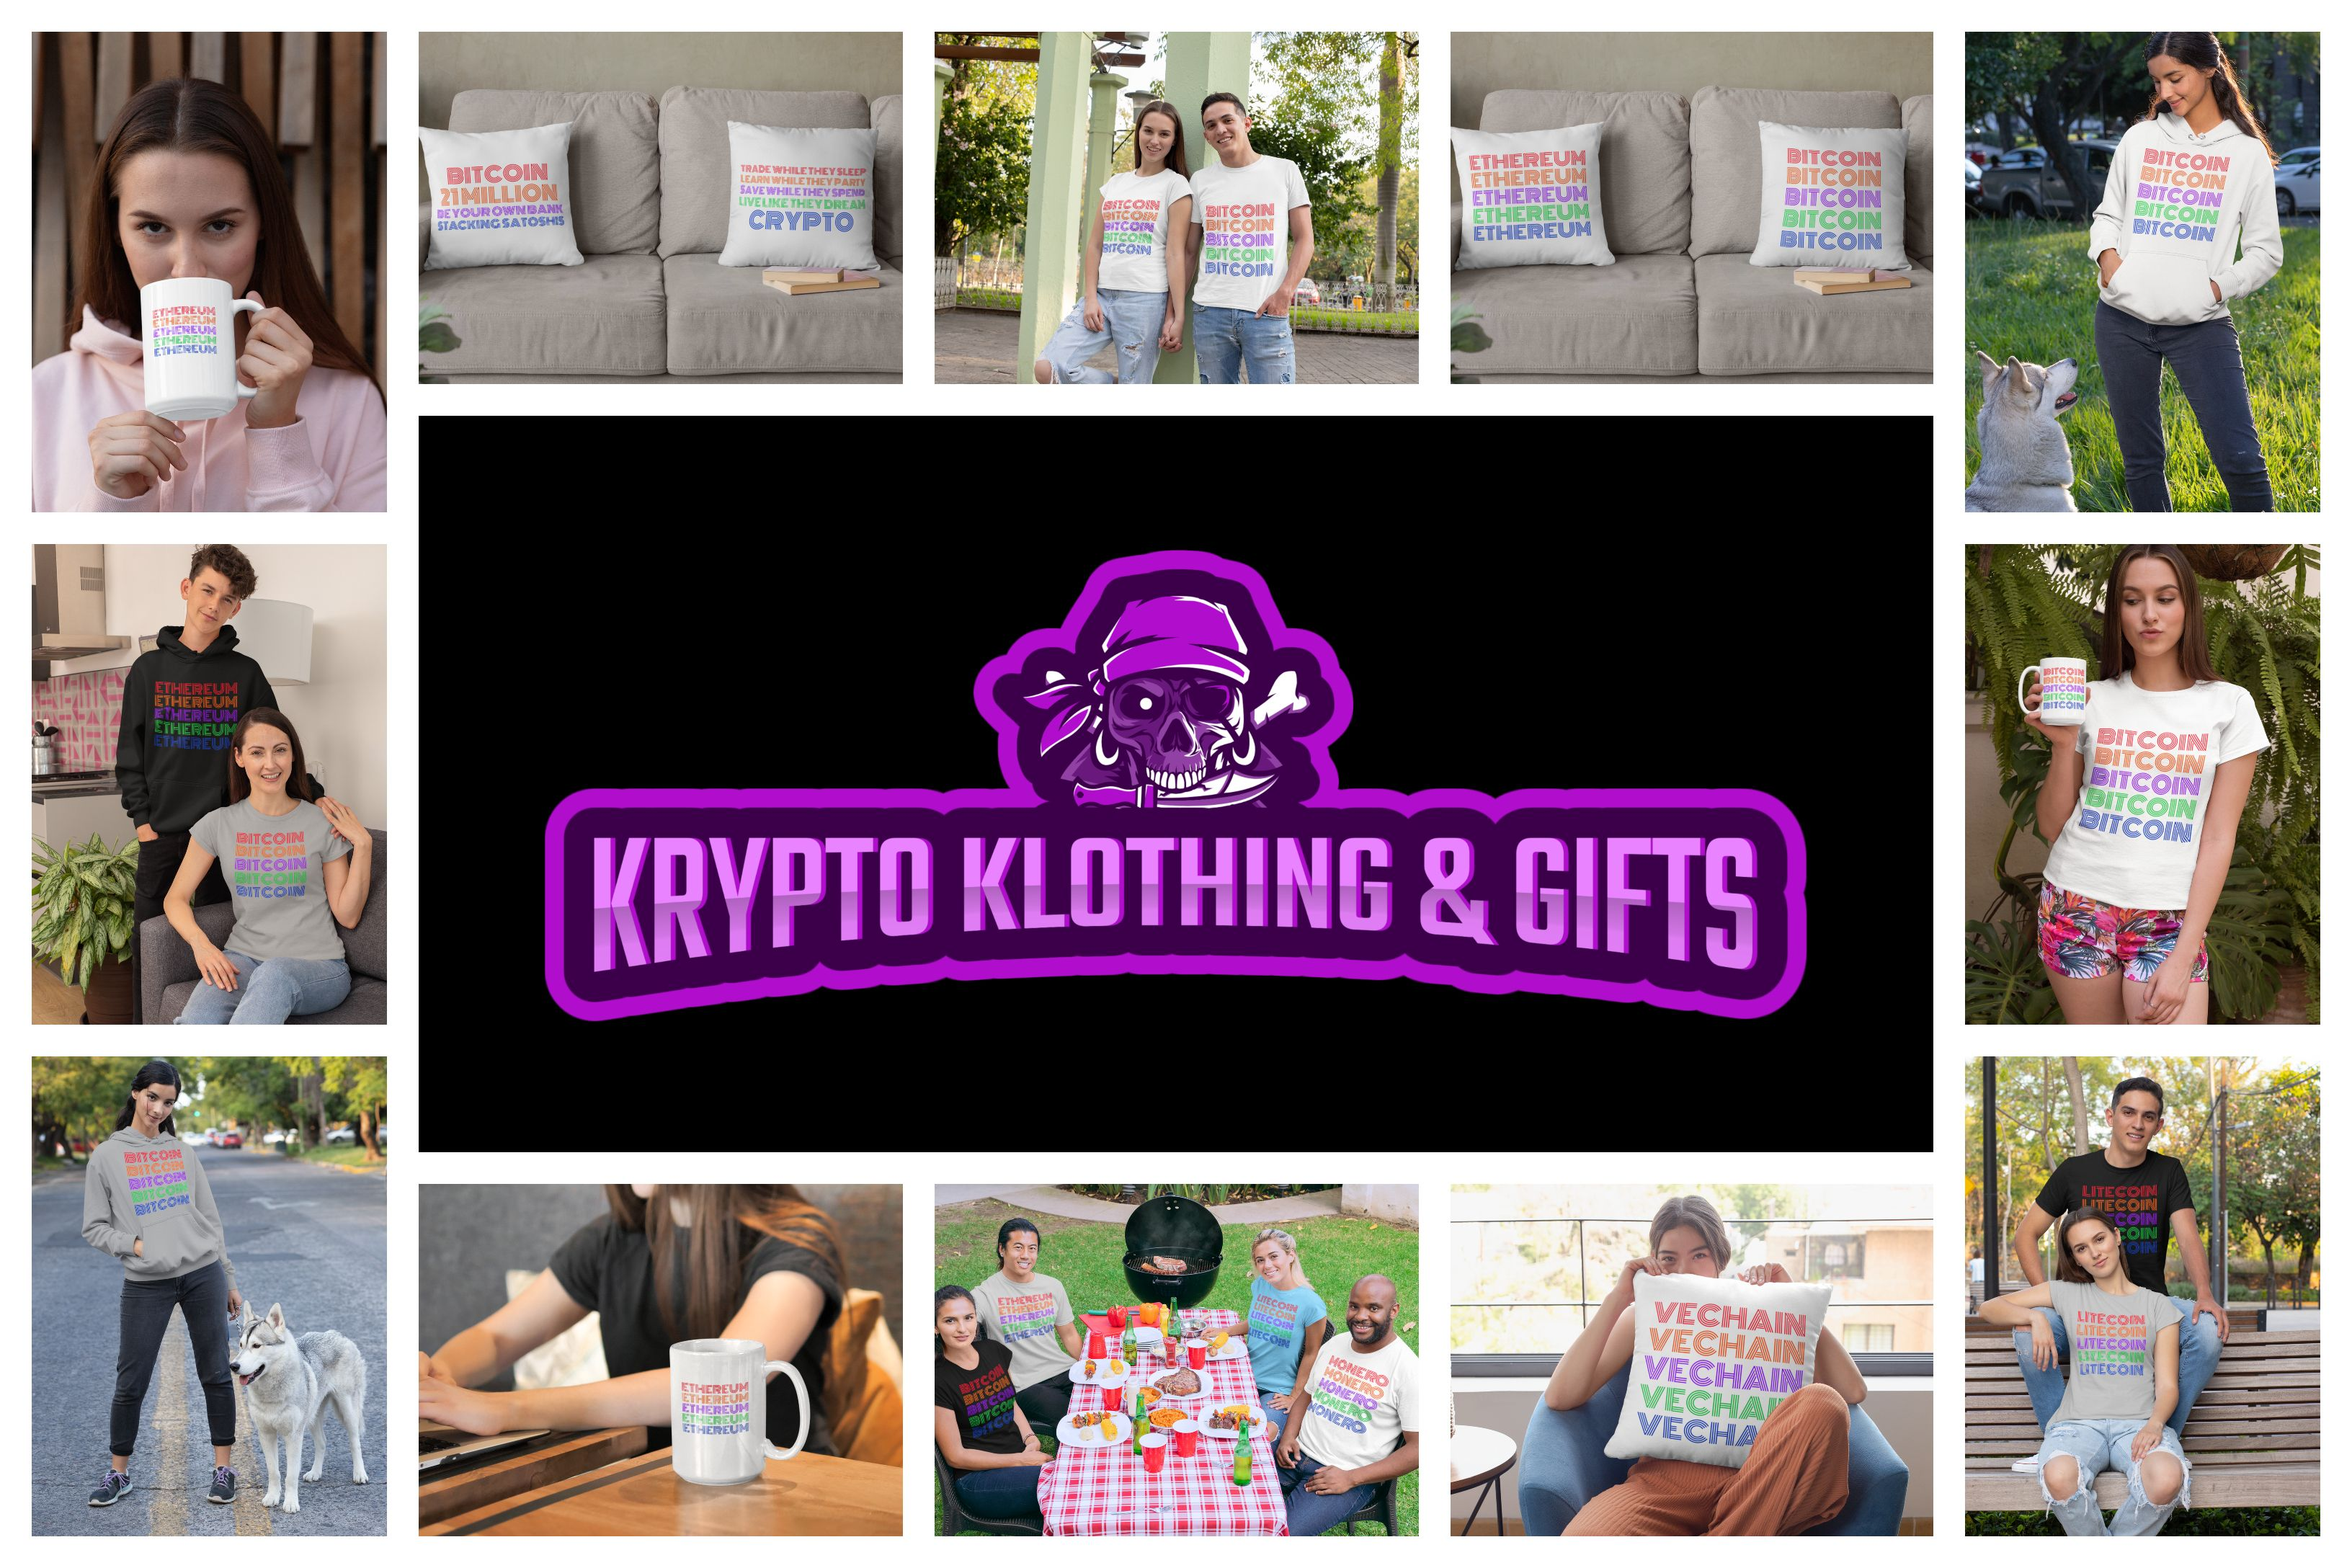 KRYPTO KLOTHING & GIFTS in 2020 Bitcoin, Cryptocurrency